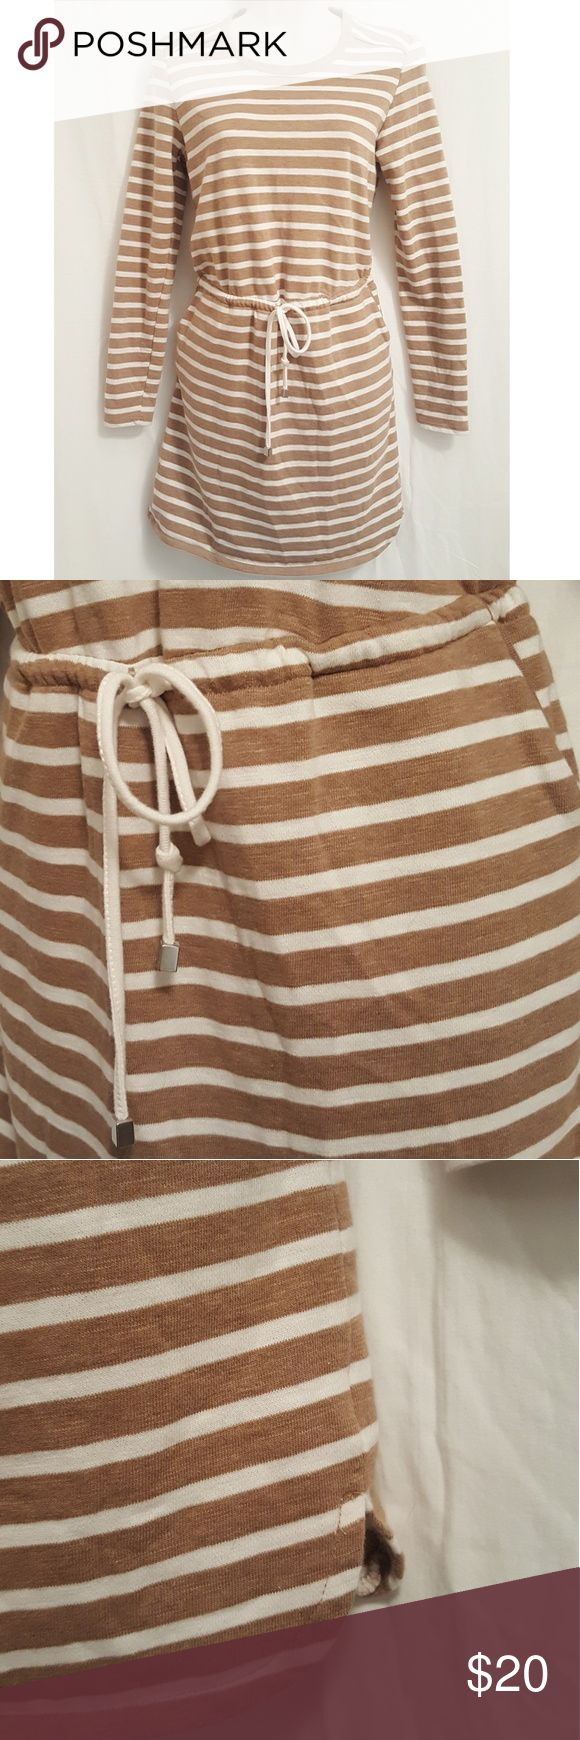 Merona stripe drawstring dress As shown,  vibrant,  mint condition,  last photo best represents the color,  long sleeve,  bib hem, drawstring above knee dress. Cotton tan & ivory nautical style dress. Please view all photos and ask all questions NOT answered in this listing PRIOR to purchase. Merona Dresses Long Sleeve